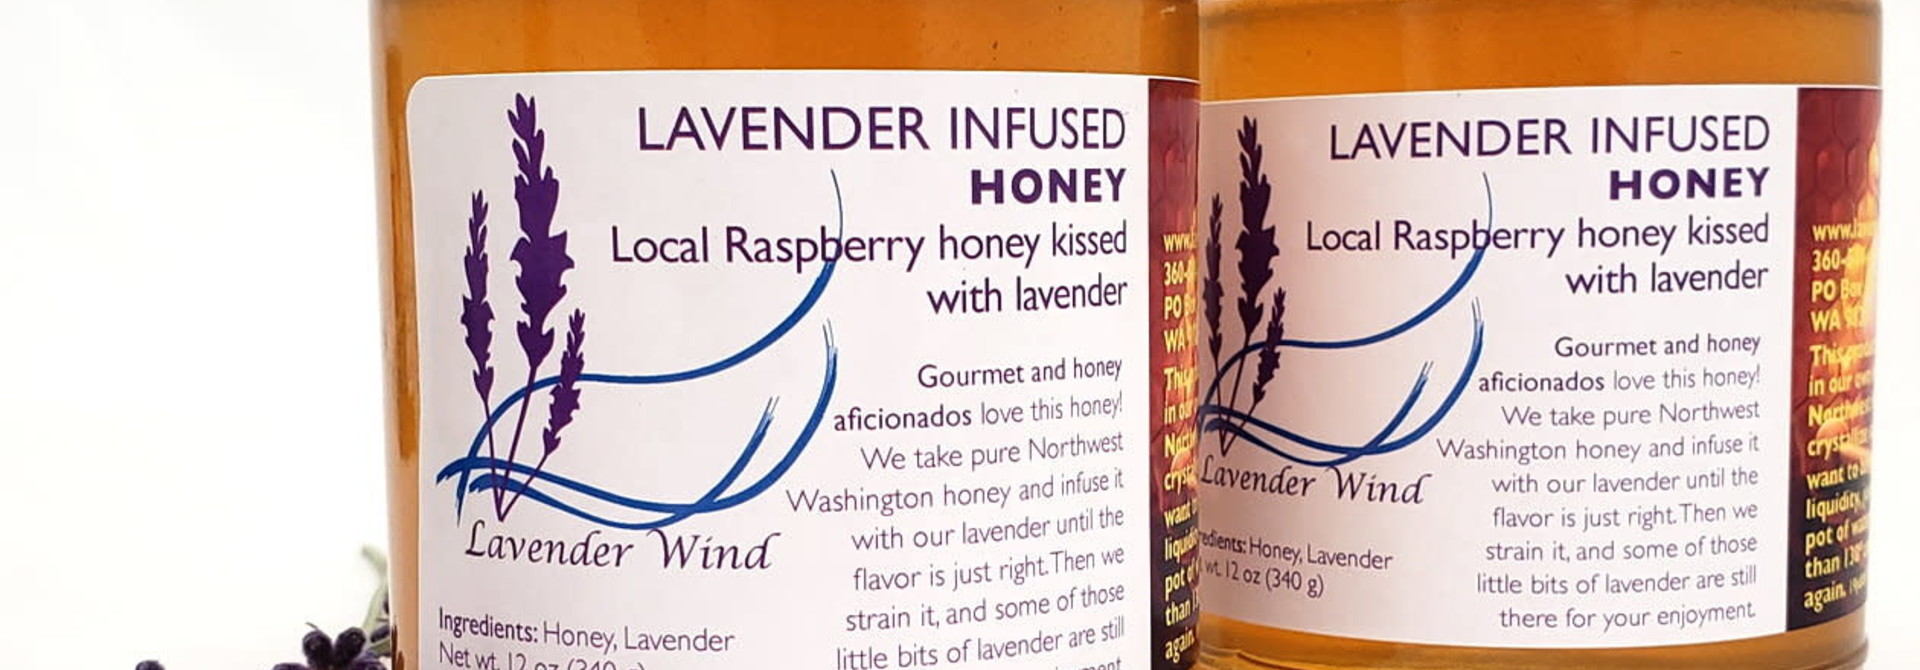 Lavender Infused Honey - 12 oz.